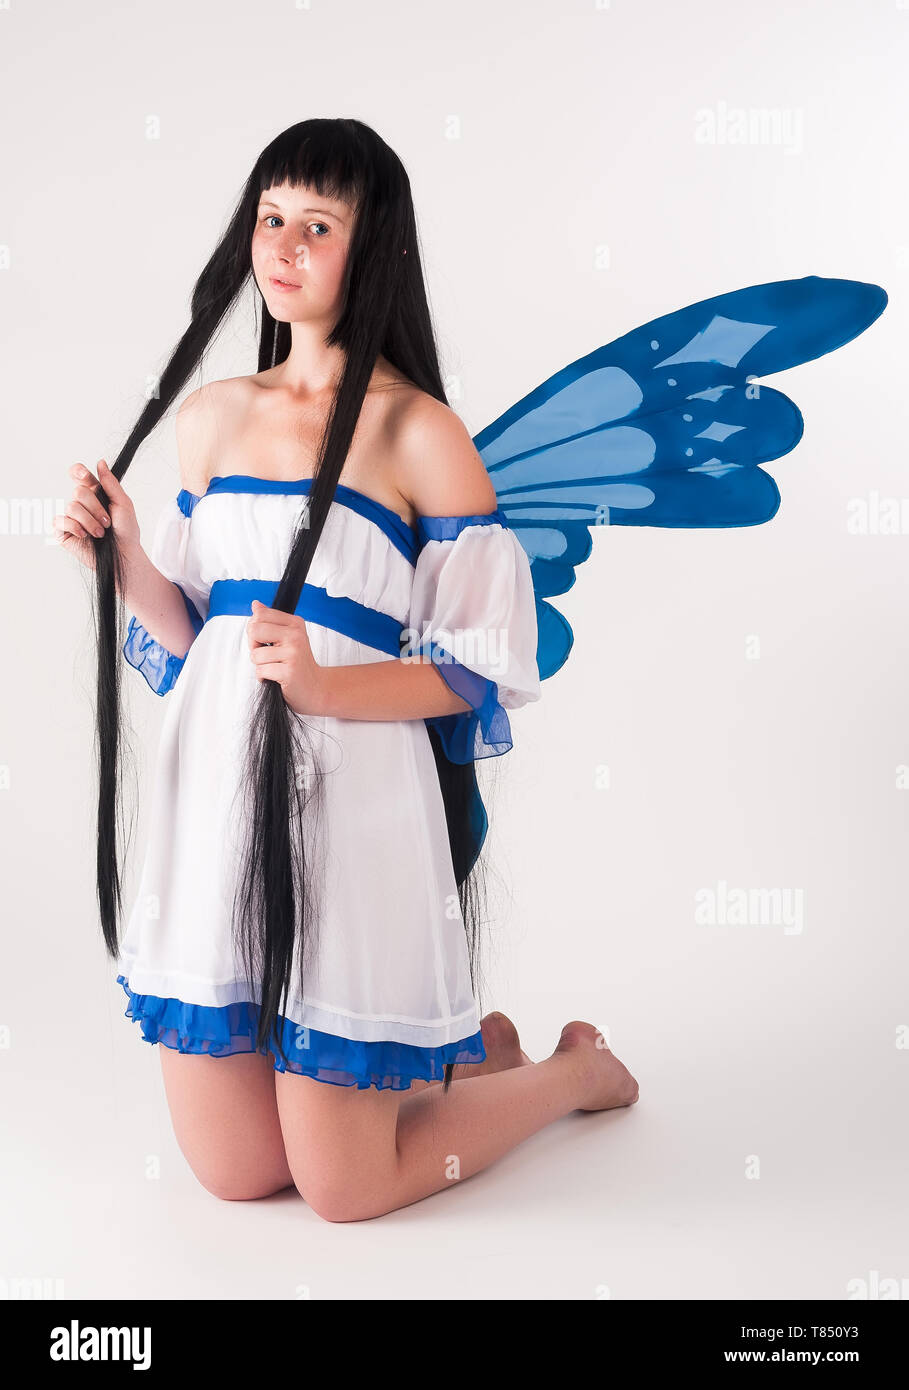 Beautiful Anime Girl With Long Hair And Wings At White Background Stock Photo Alamy